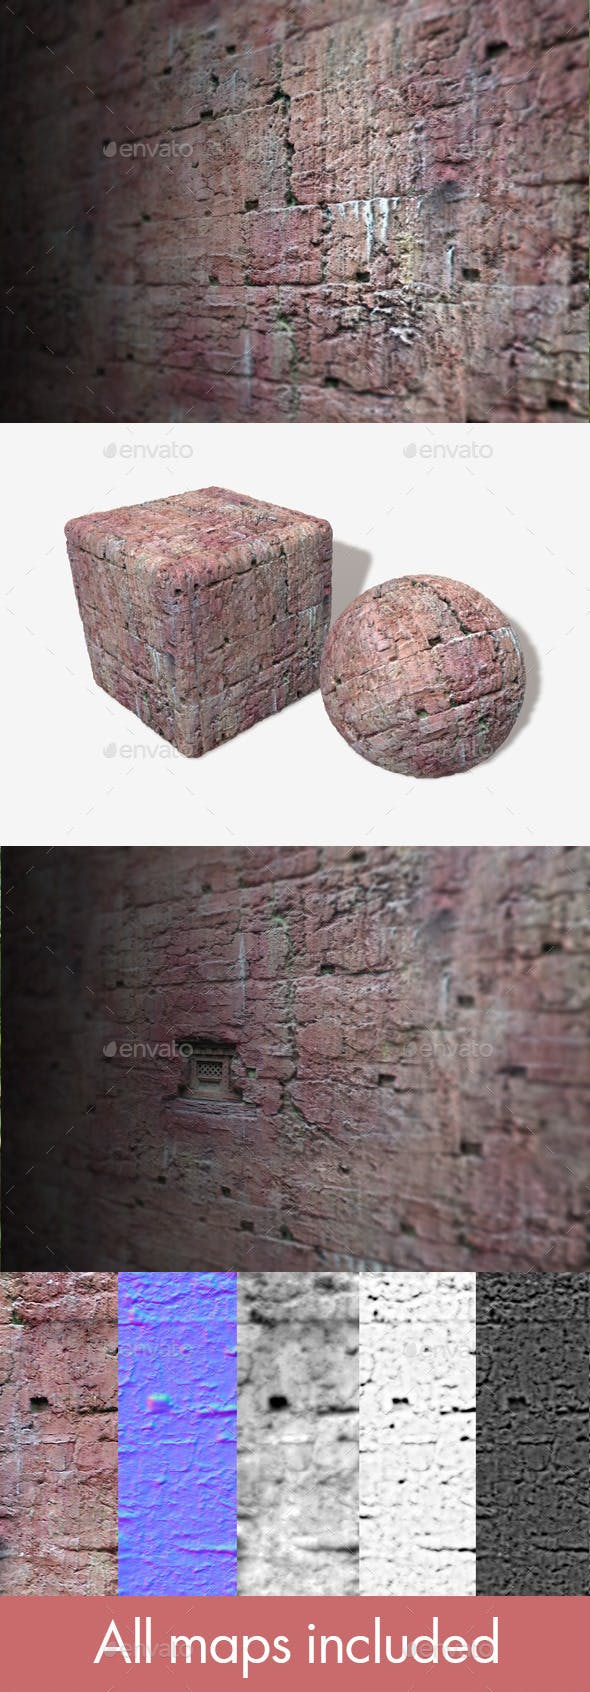 Clay Wall 1 Seamless Texture - 3DOcean Item for Sale